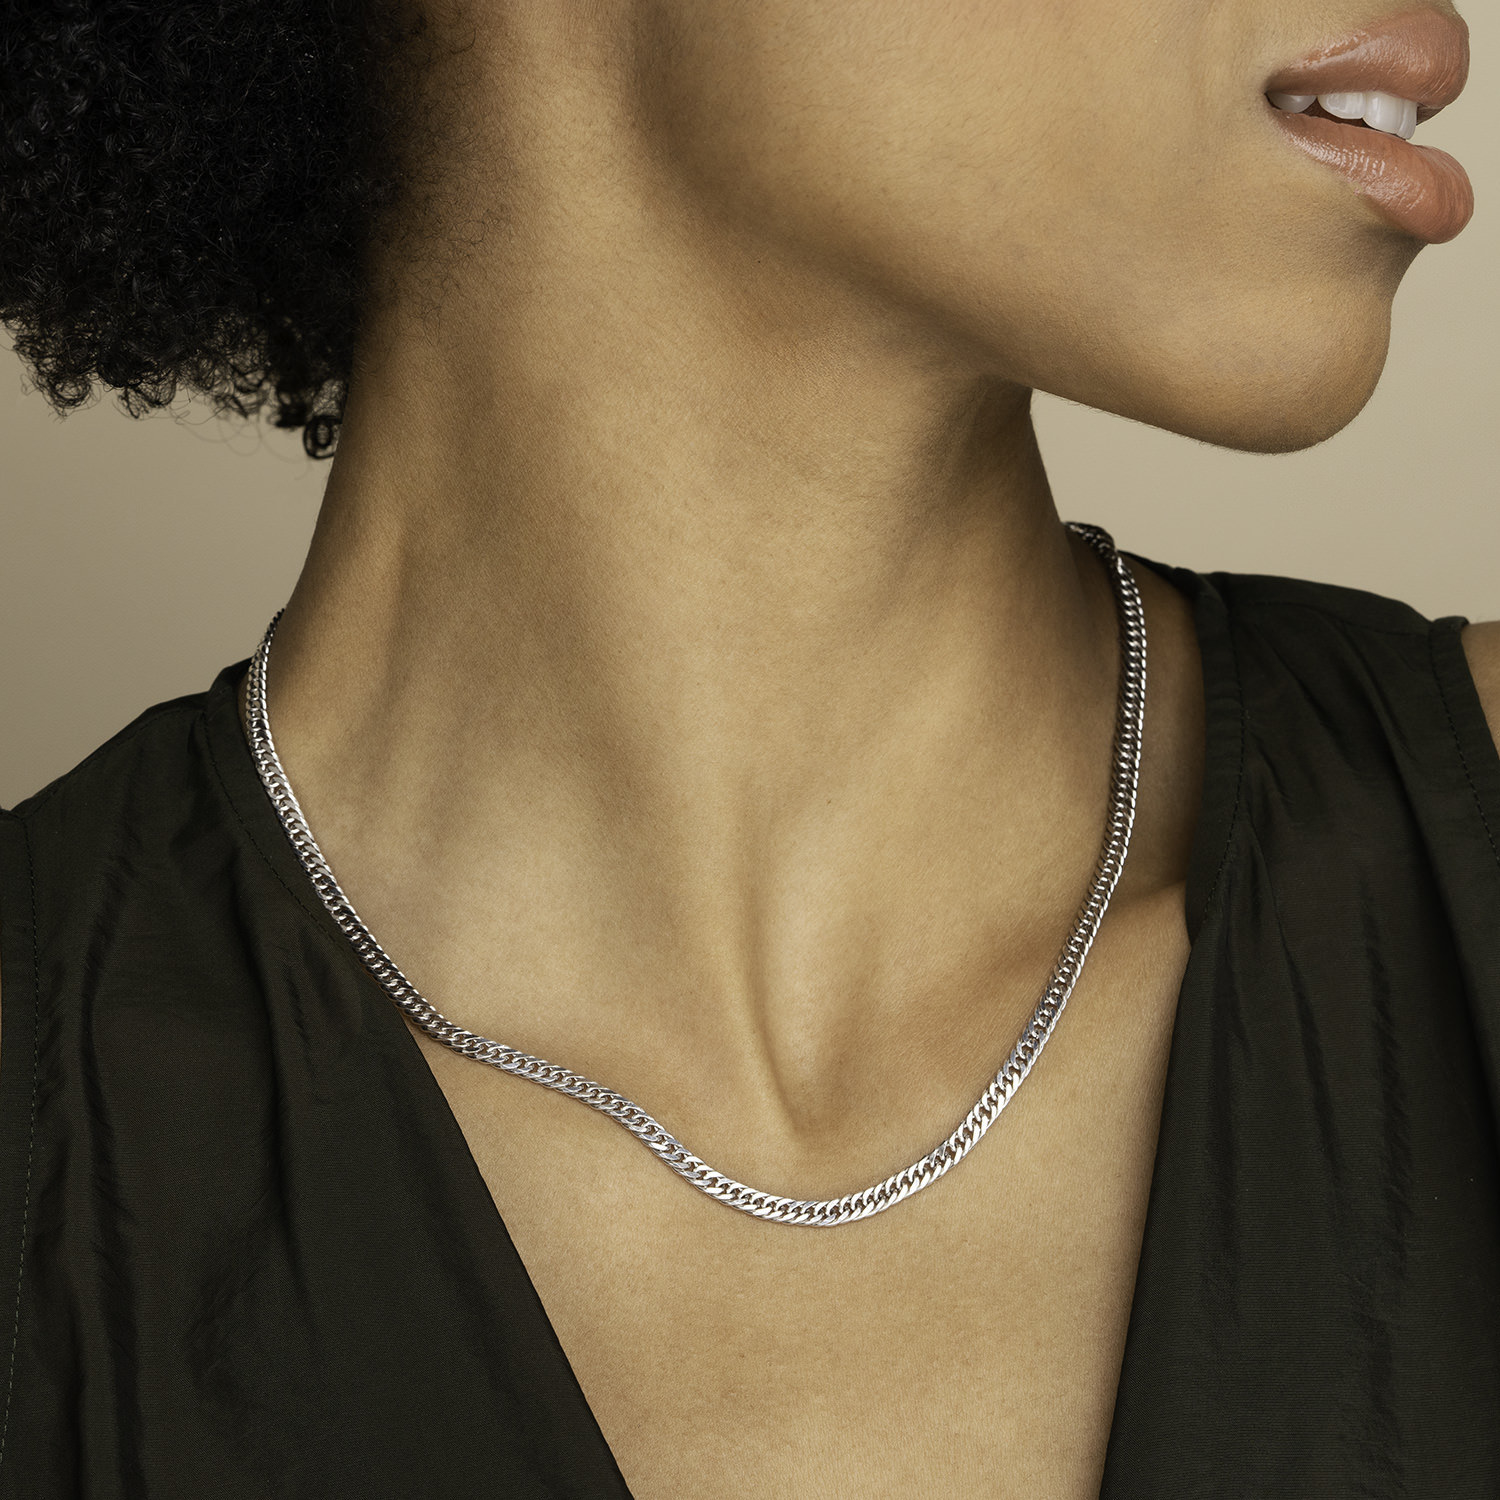 model wearing the silver chain necklace